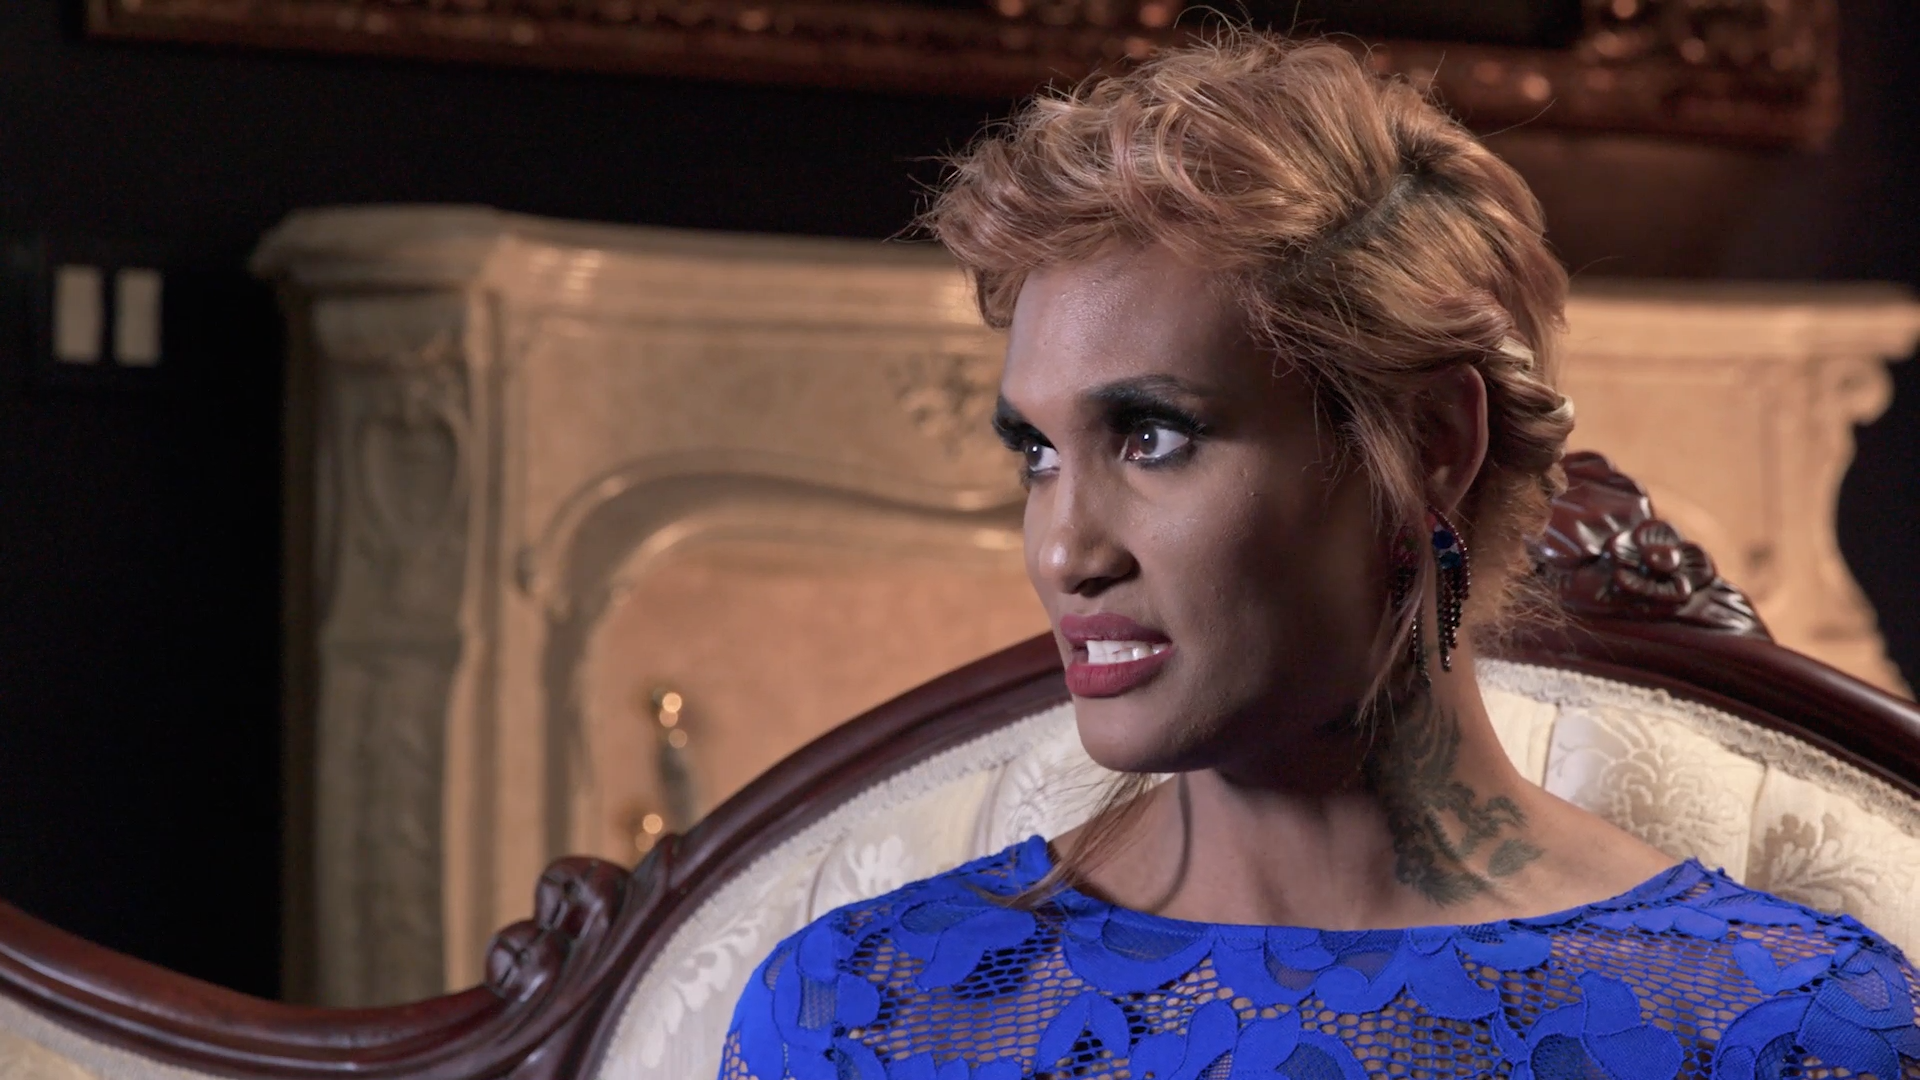 interview d smith brings transgender awareness to the forefront